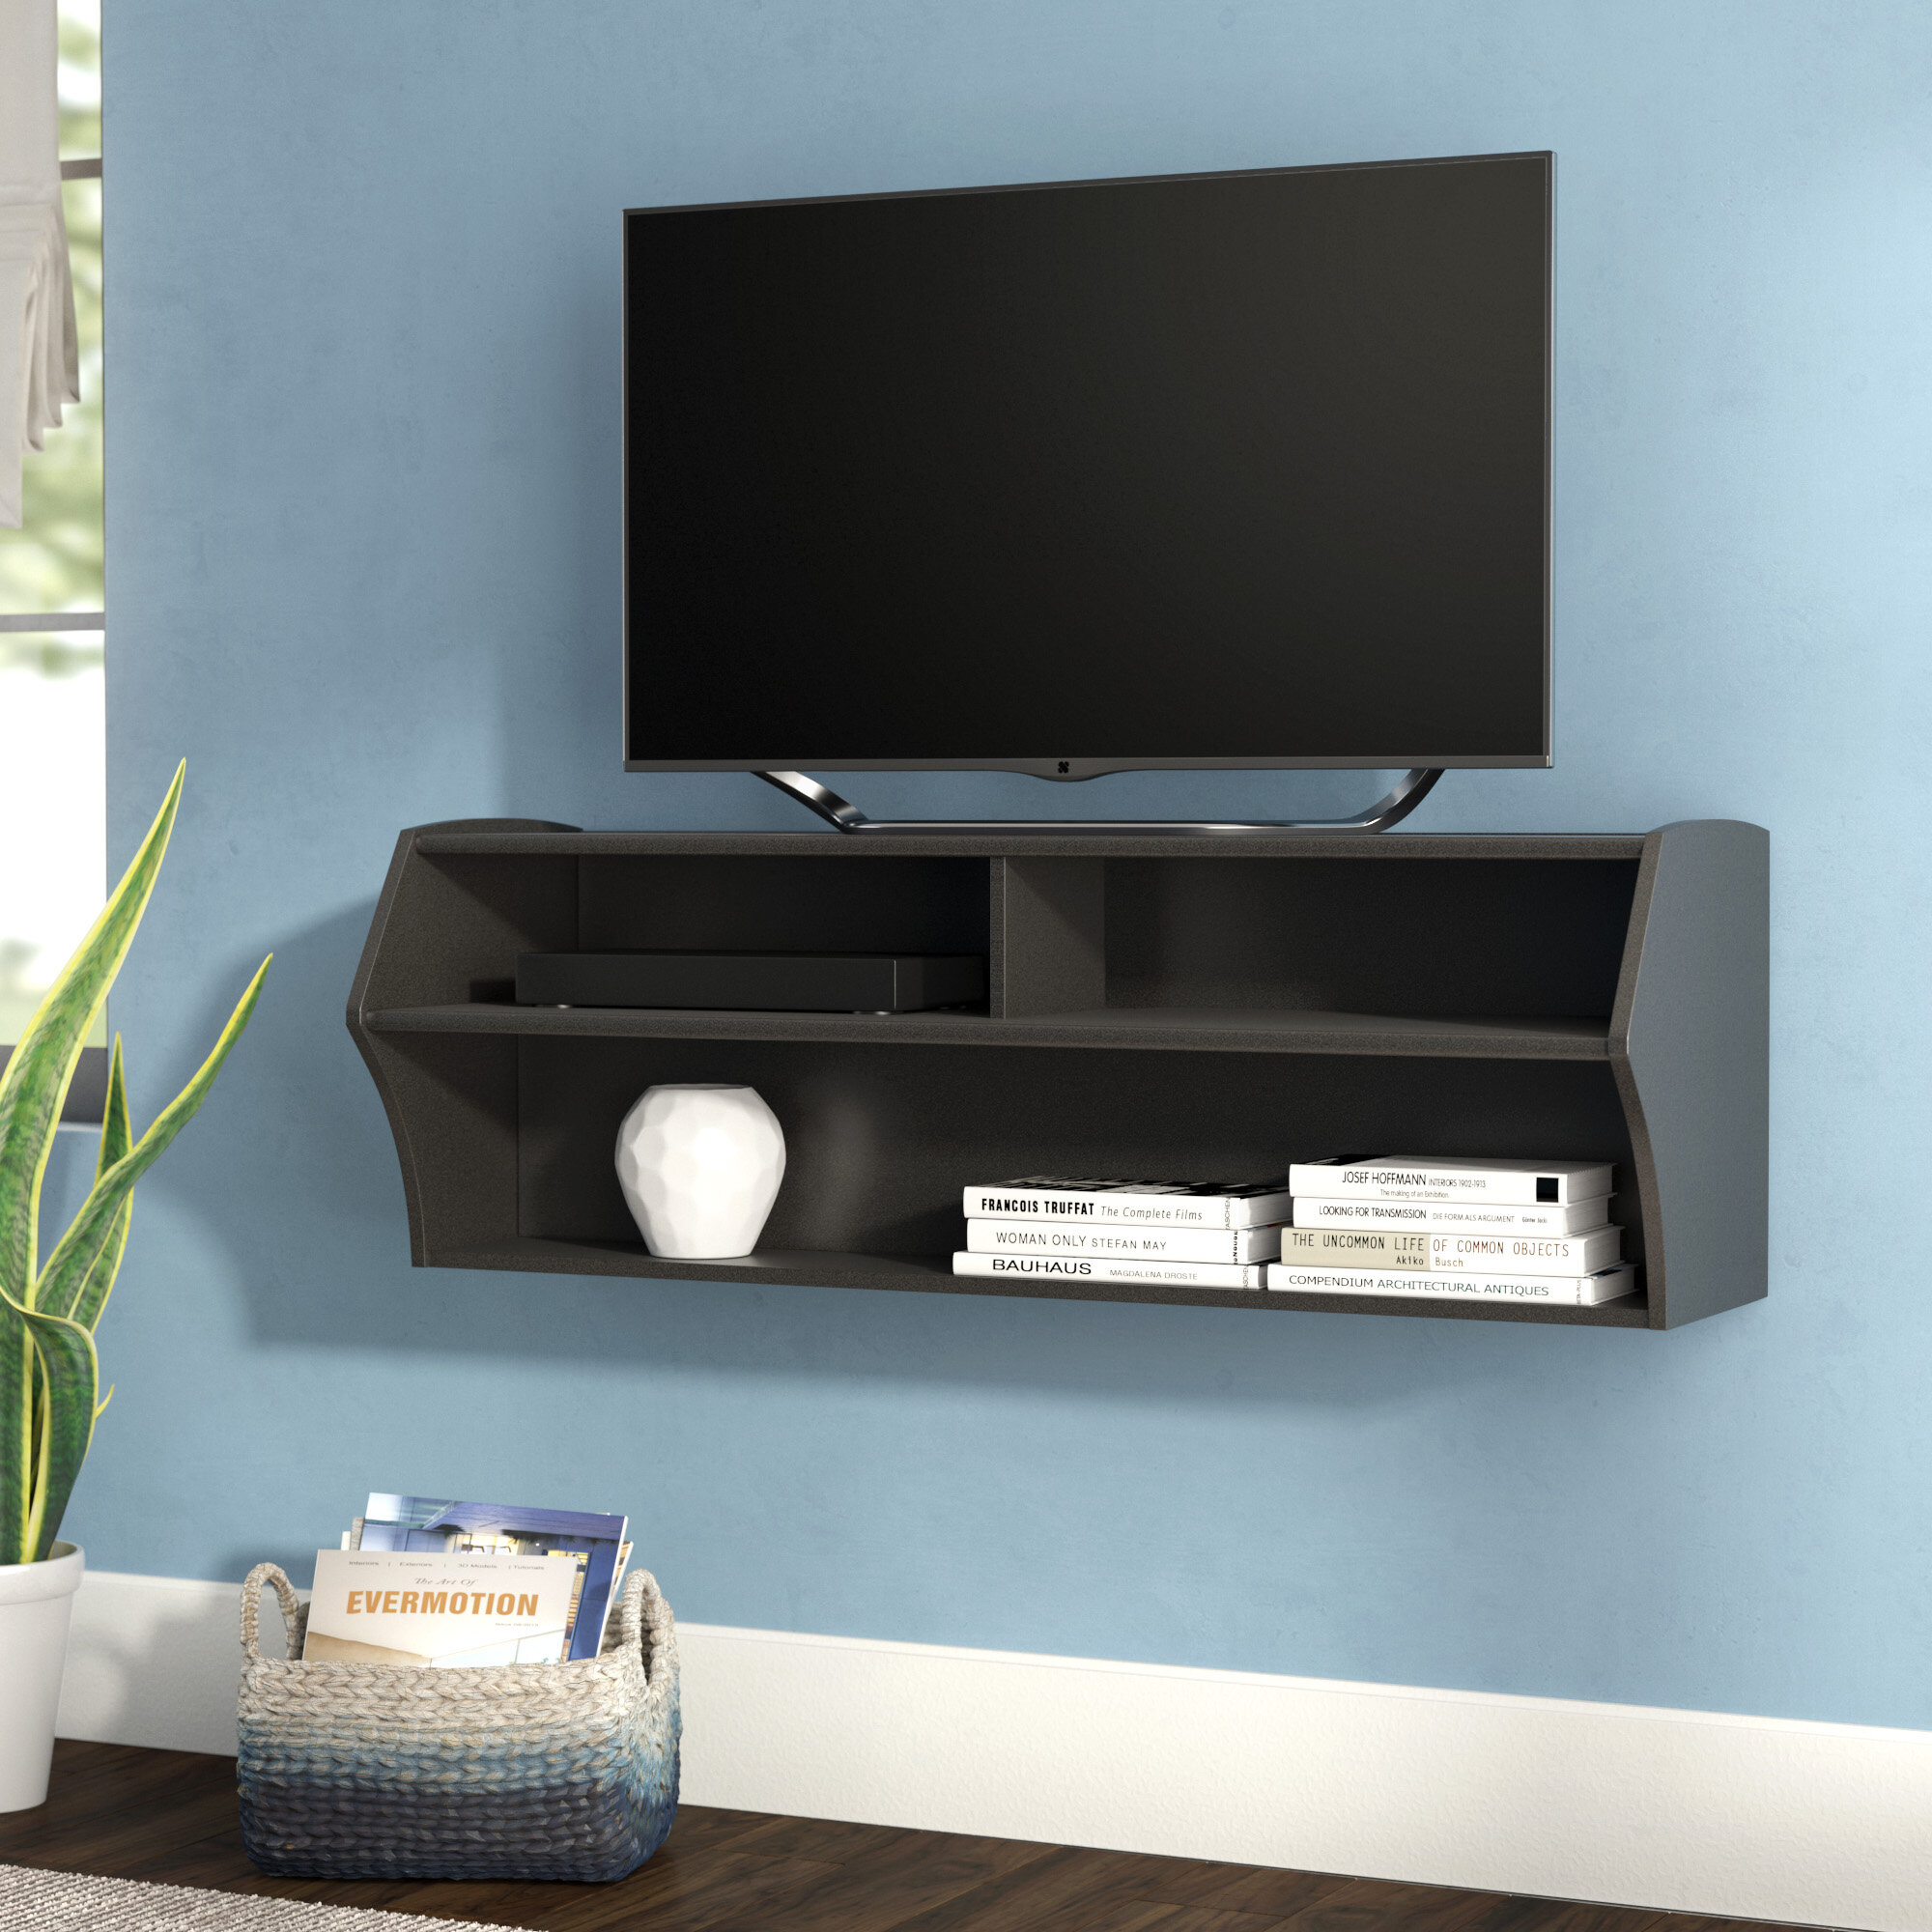 Surprising Capirano Floating Tv Stand For Tvs Up To 55 Inches Gmtry Best Dining Table And Chair Ideas Images Gmtryco